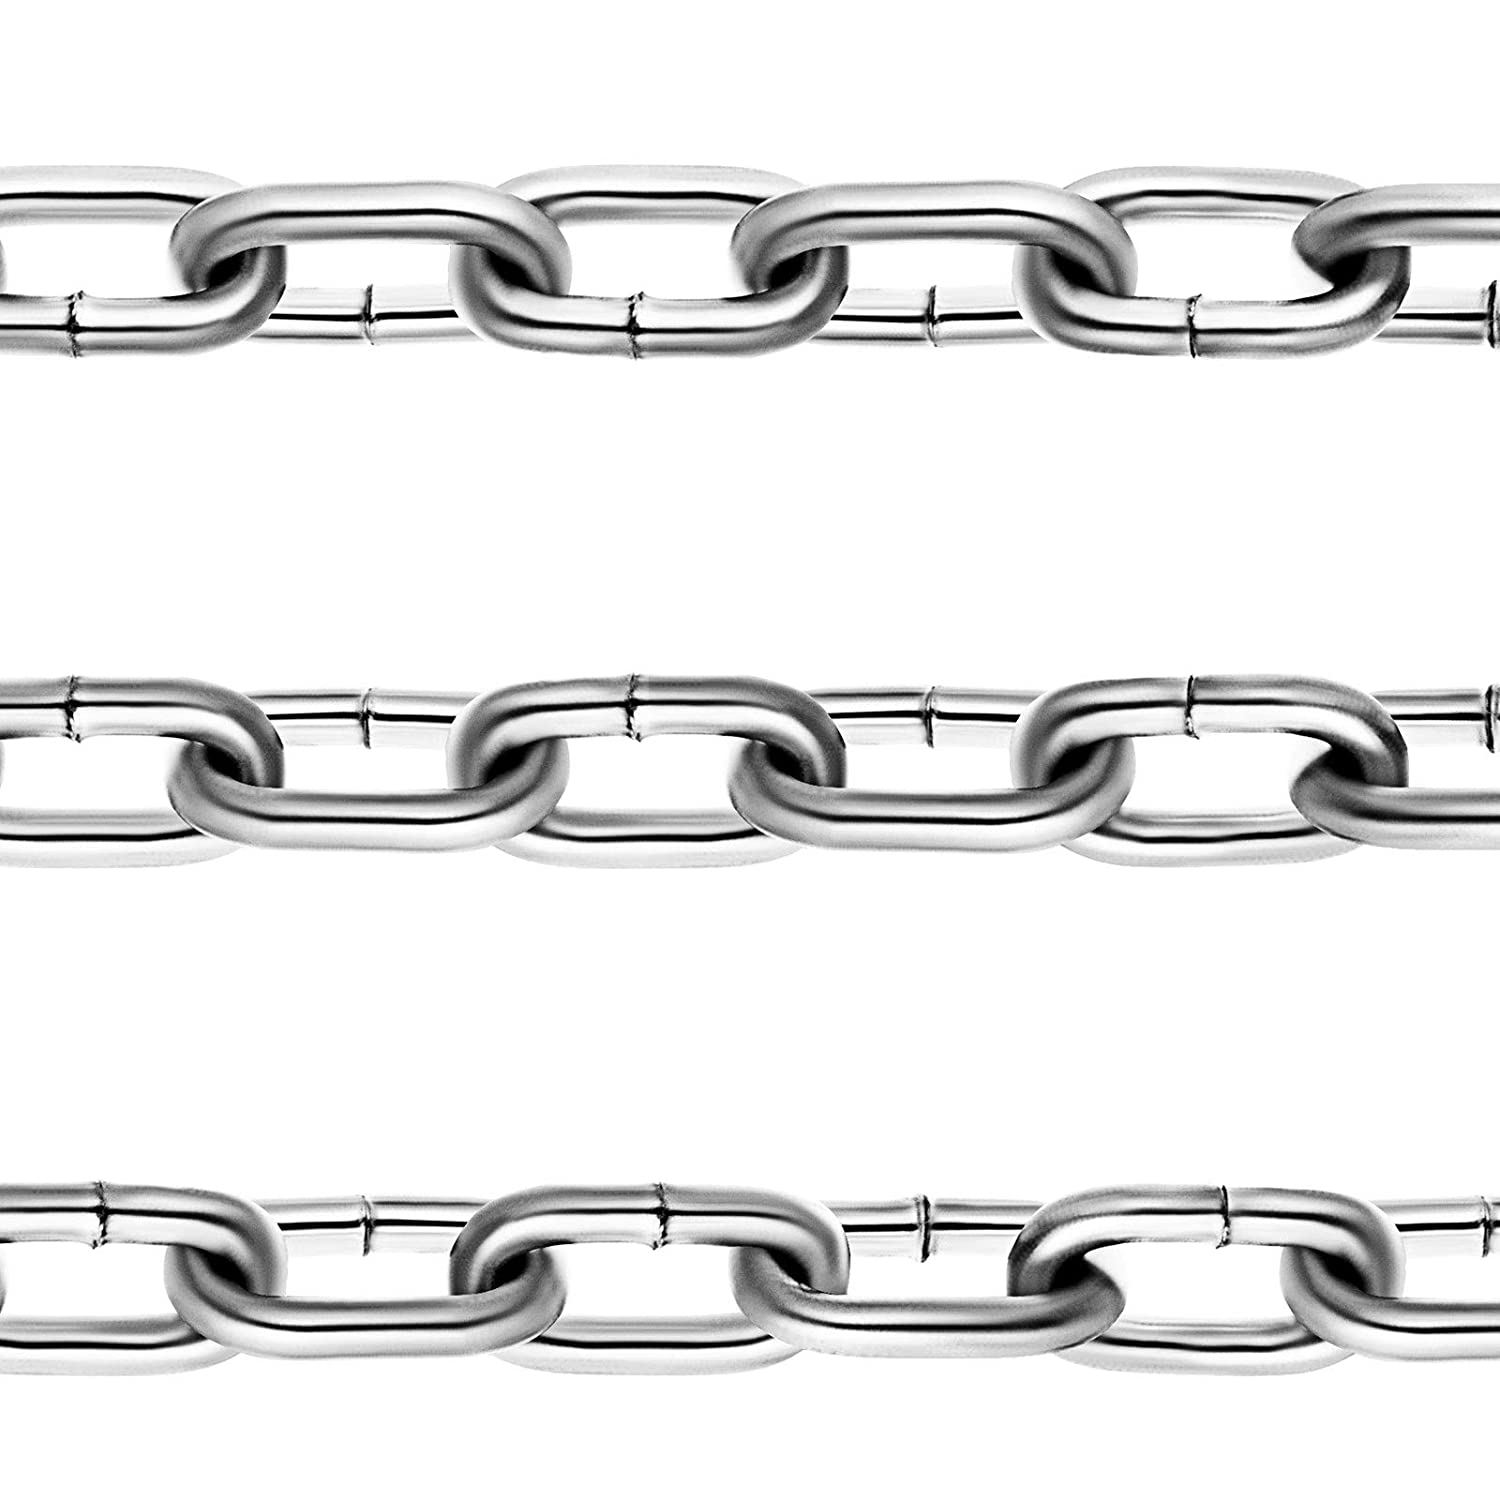 Mophorn Grade 30 Chain 1//4 Inch by 20 Feet Length Grade 30 Proof Coil Chain Zinc Plated Grade 30 Chain for Towing Logging Agriculture and Guard Rails 1//4 Inch by 20 Feet